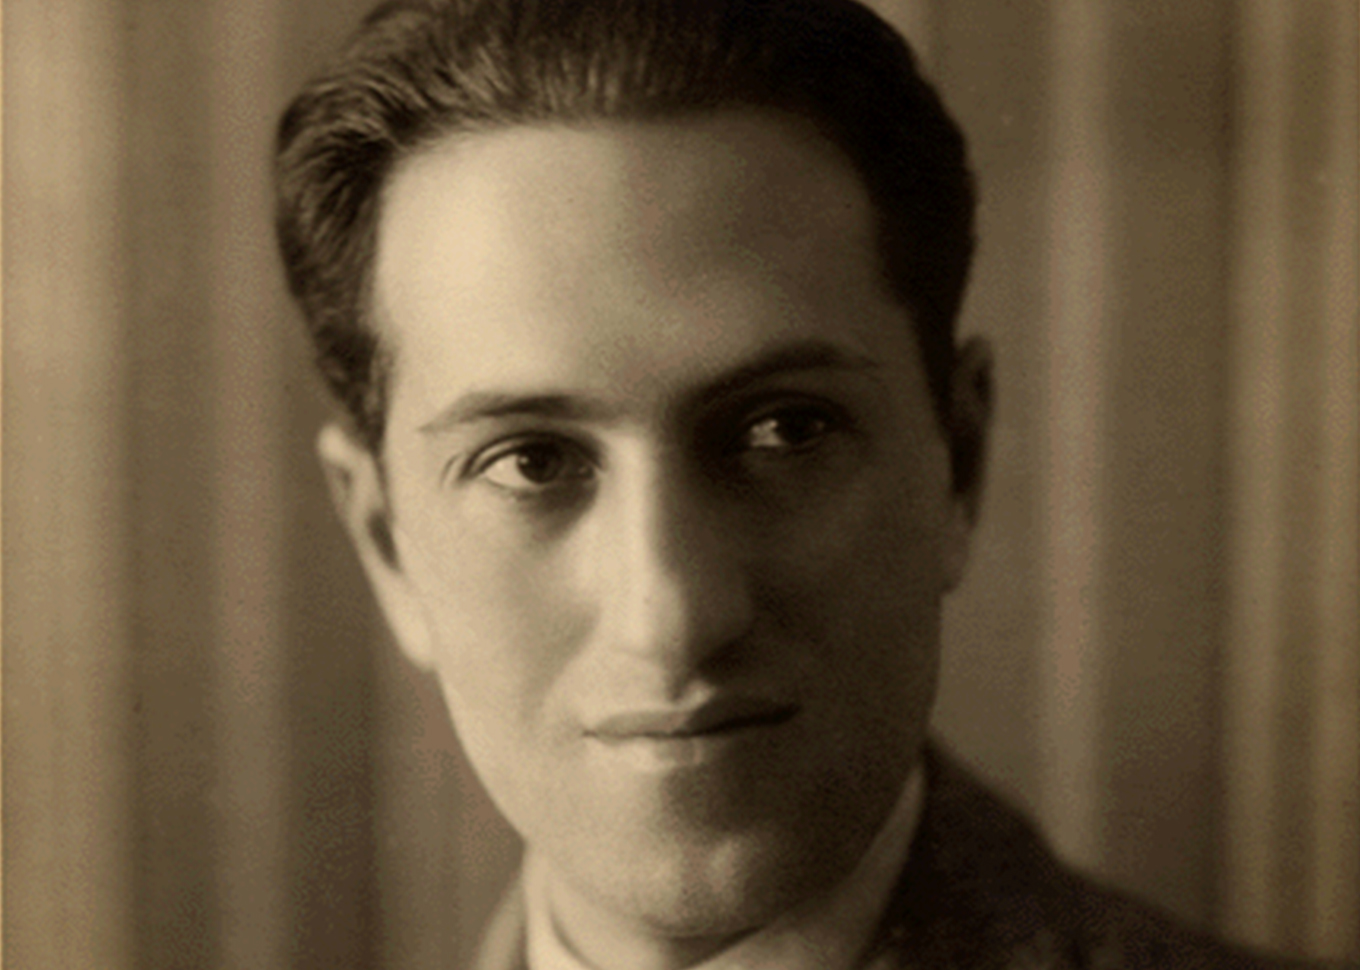 """the early career influences of george gershwin Joanne polk records earl wild's transcriptions of gershwin for the steinway & sons label this cd includes an original composition by wild, """"sonata 2000."""